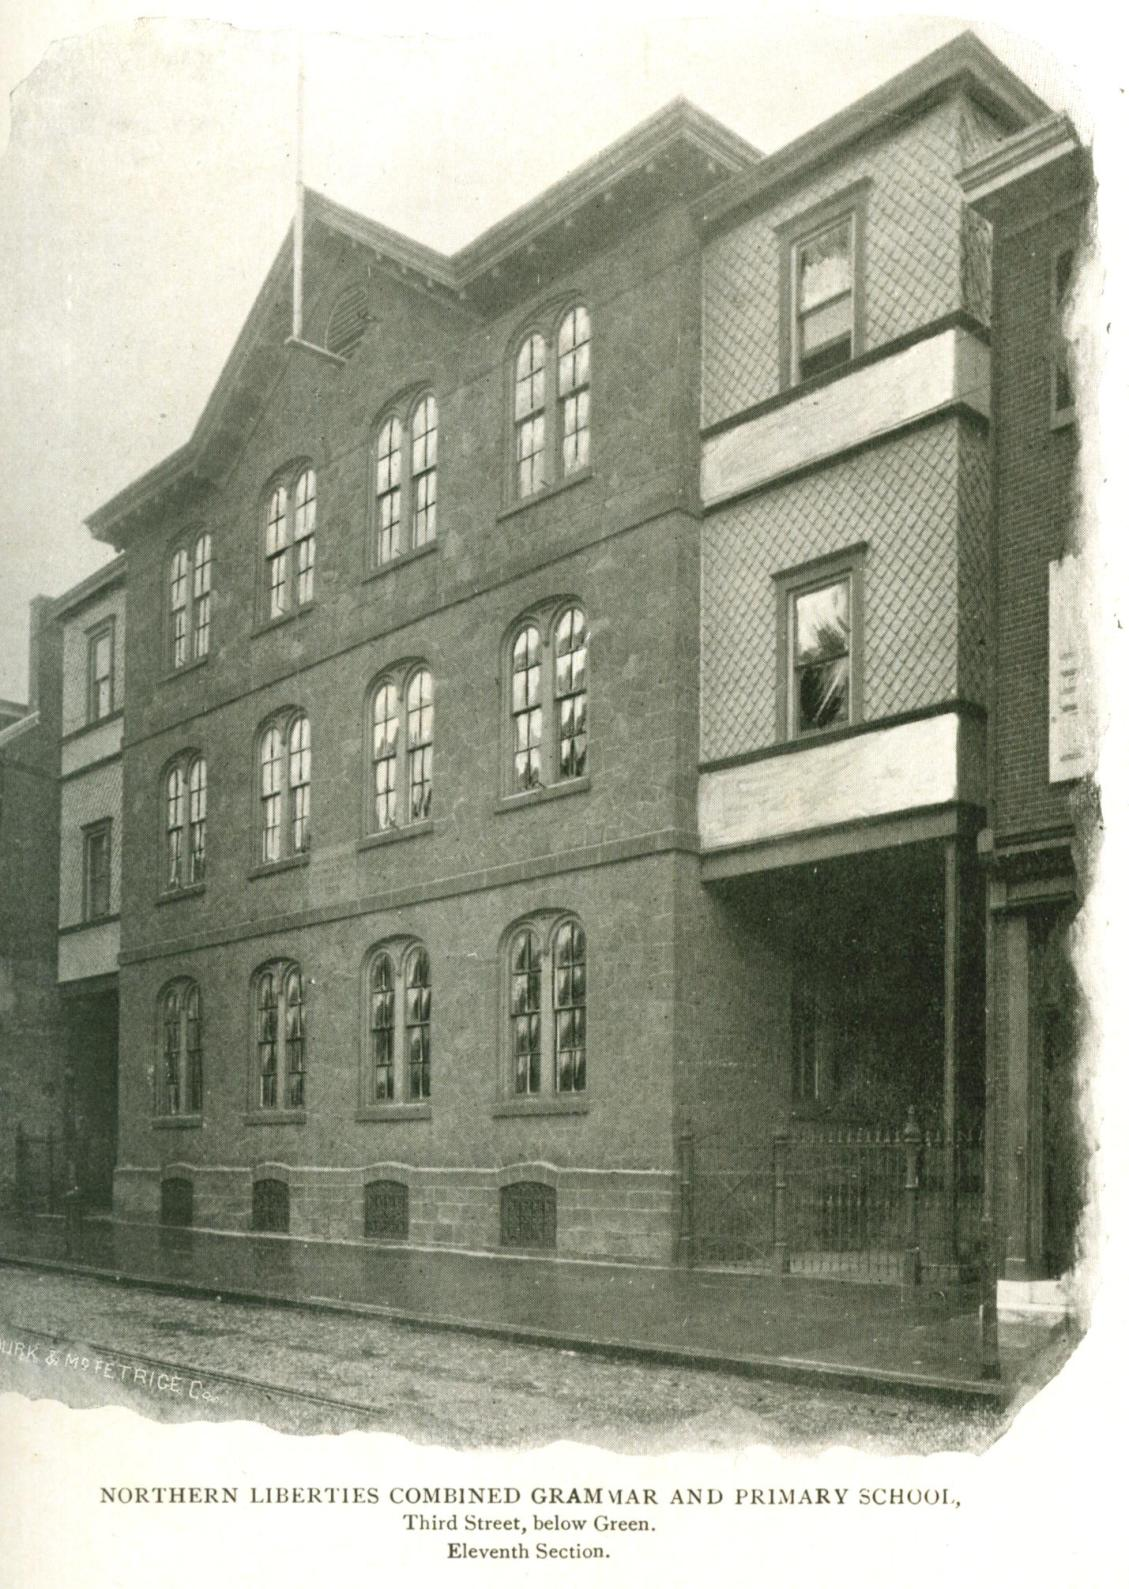 The Northern Liberties Grammar School, around 1896. Built on the former site of Commissioners' Hall, it was removed for the construction of Spring Garden Street in the 1920s. From The Public Schools of Philadelphia (1897).